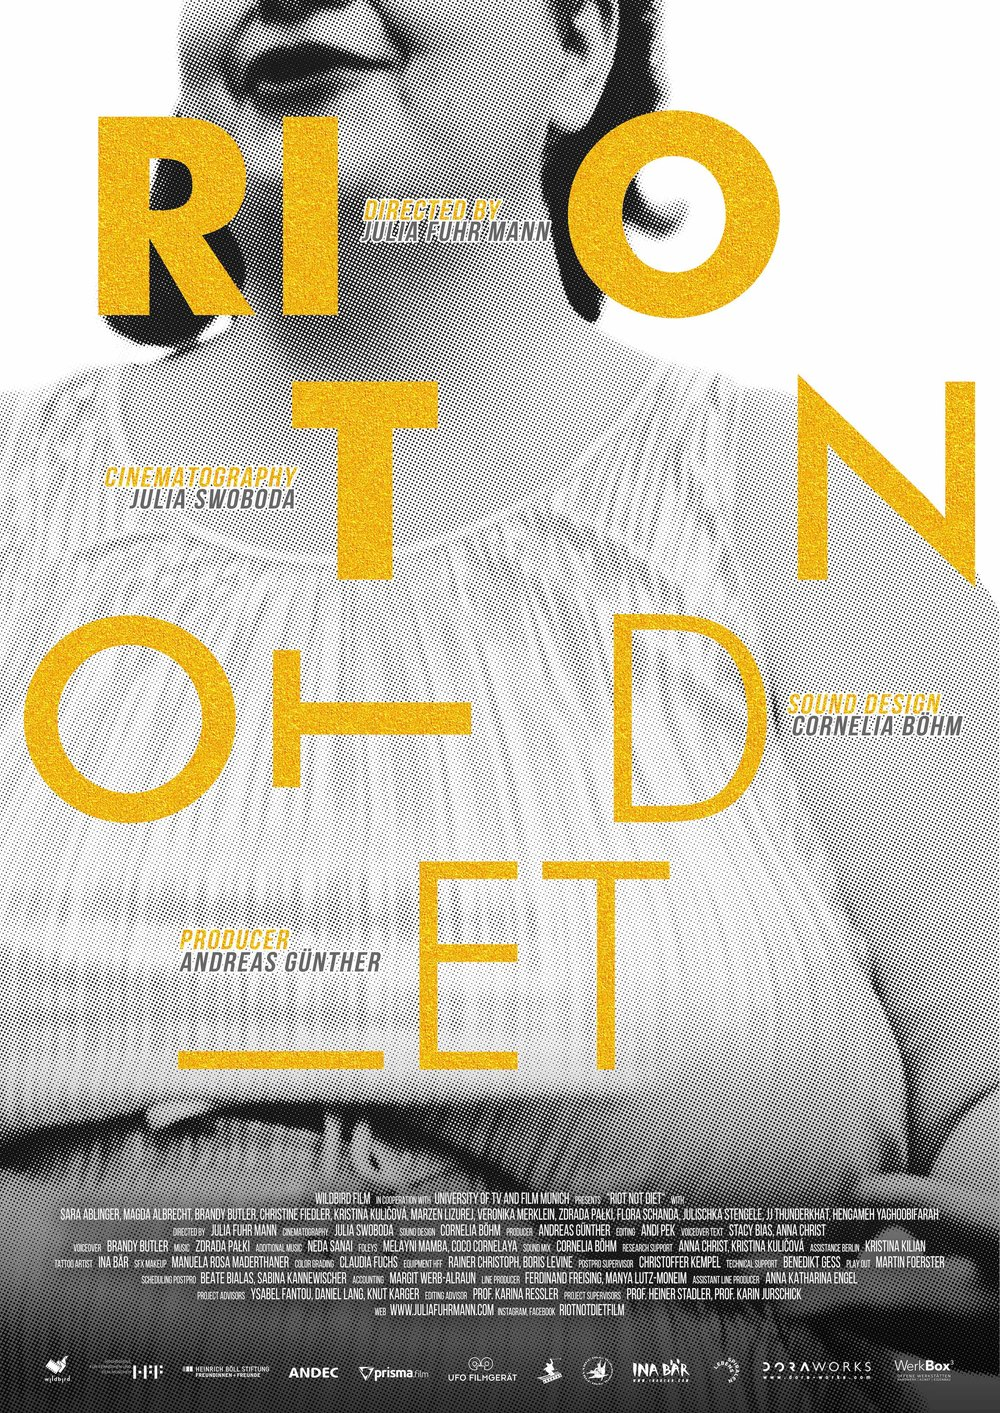 RIOT NOT DIET    A golden summer dress in XXL, the ice lolly drips slowly onto the hot ground.  Riot Not Diet  creates a queer feminist utopia far away from BMI norms and male* gaze. Five thousand years of patriarchy have left their…   Read More